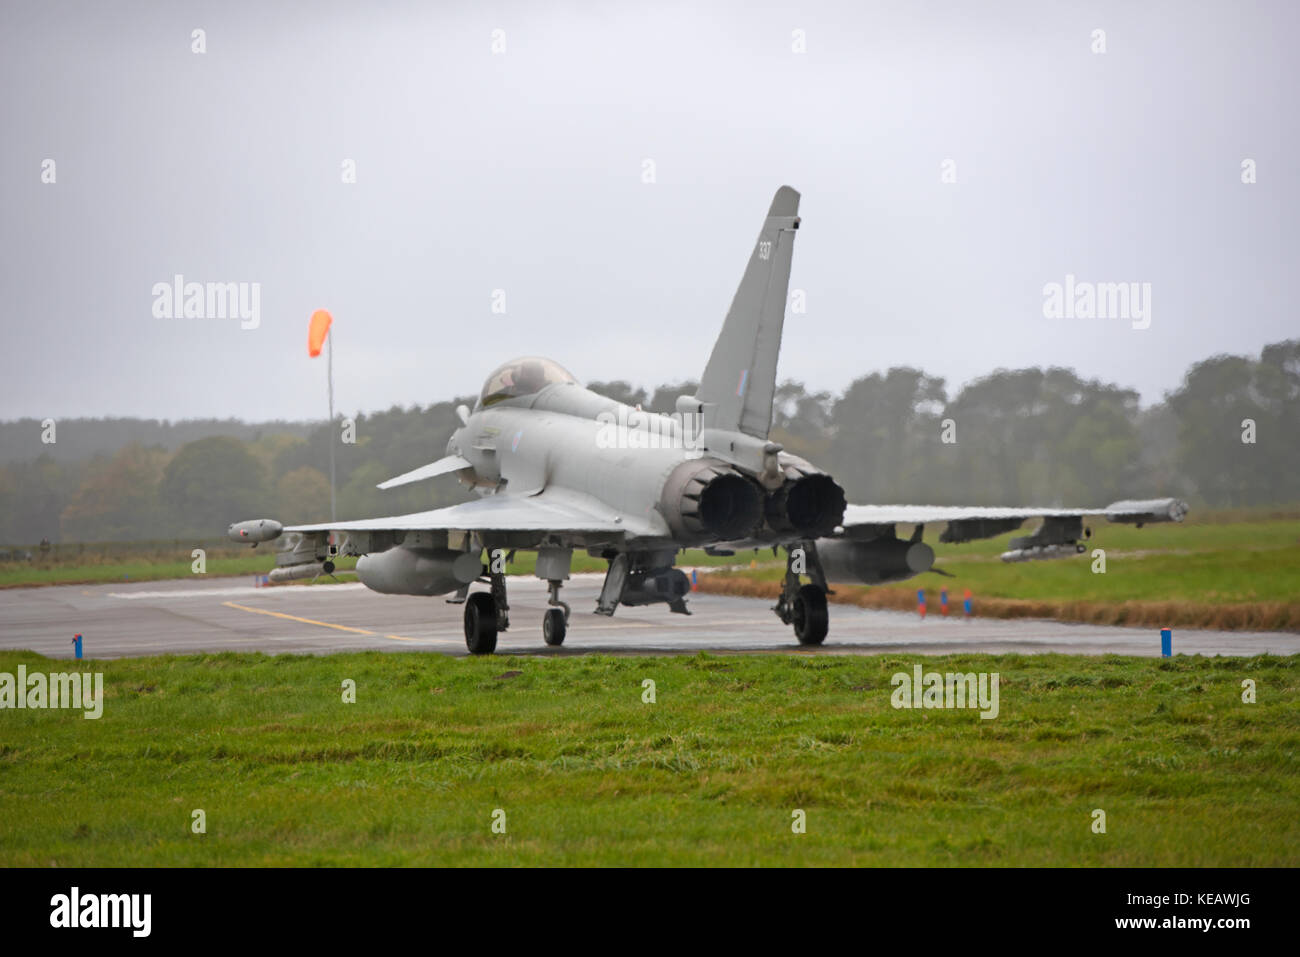 The UKs Eurofighter Typhoon a twin engined Canard-delta Wing fast jet fighter some of which are based at RAF lLossiemoputh - Stock Image